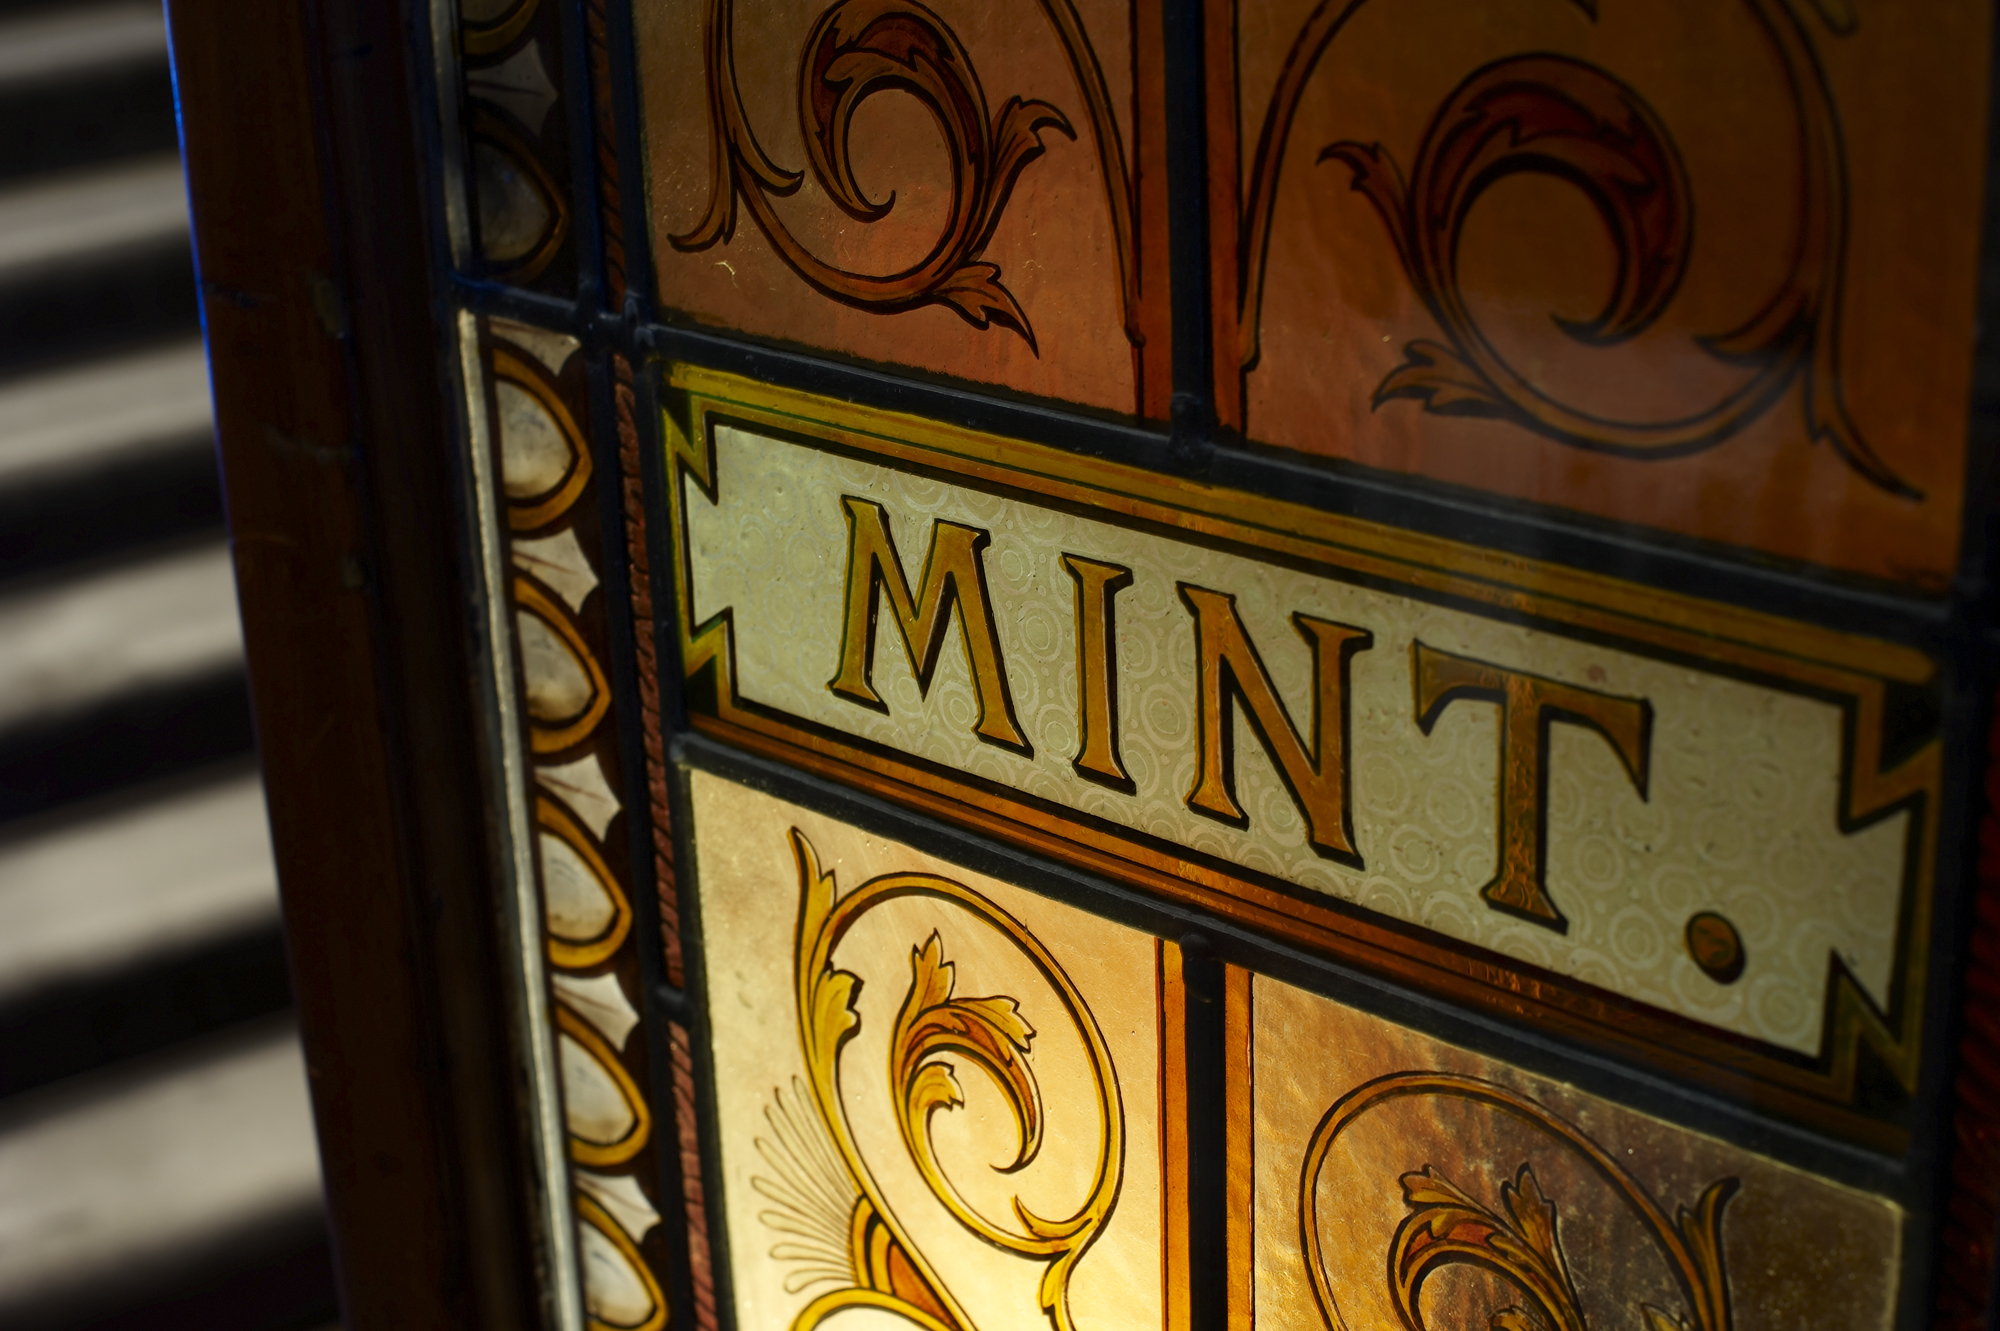 A decorative glass door panel with the word 'Mint' painted onto it in gold lettering.